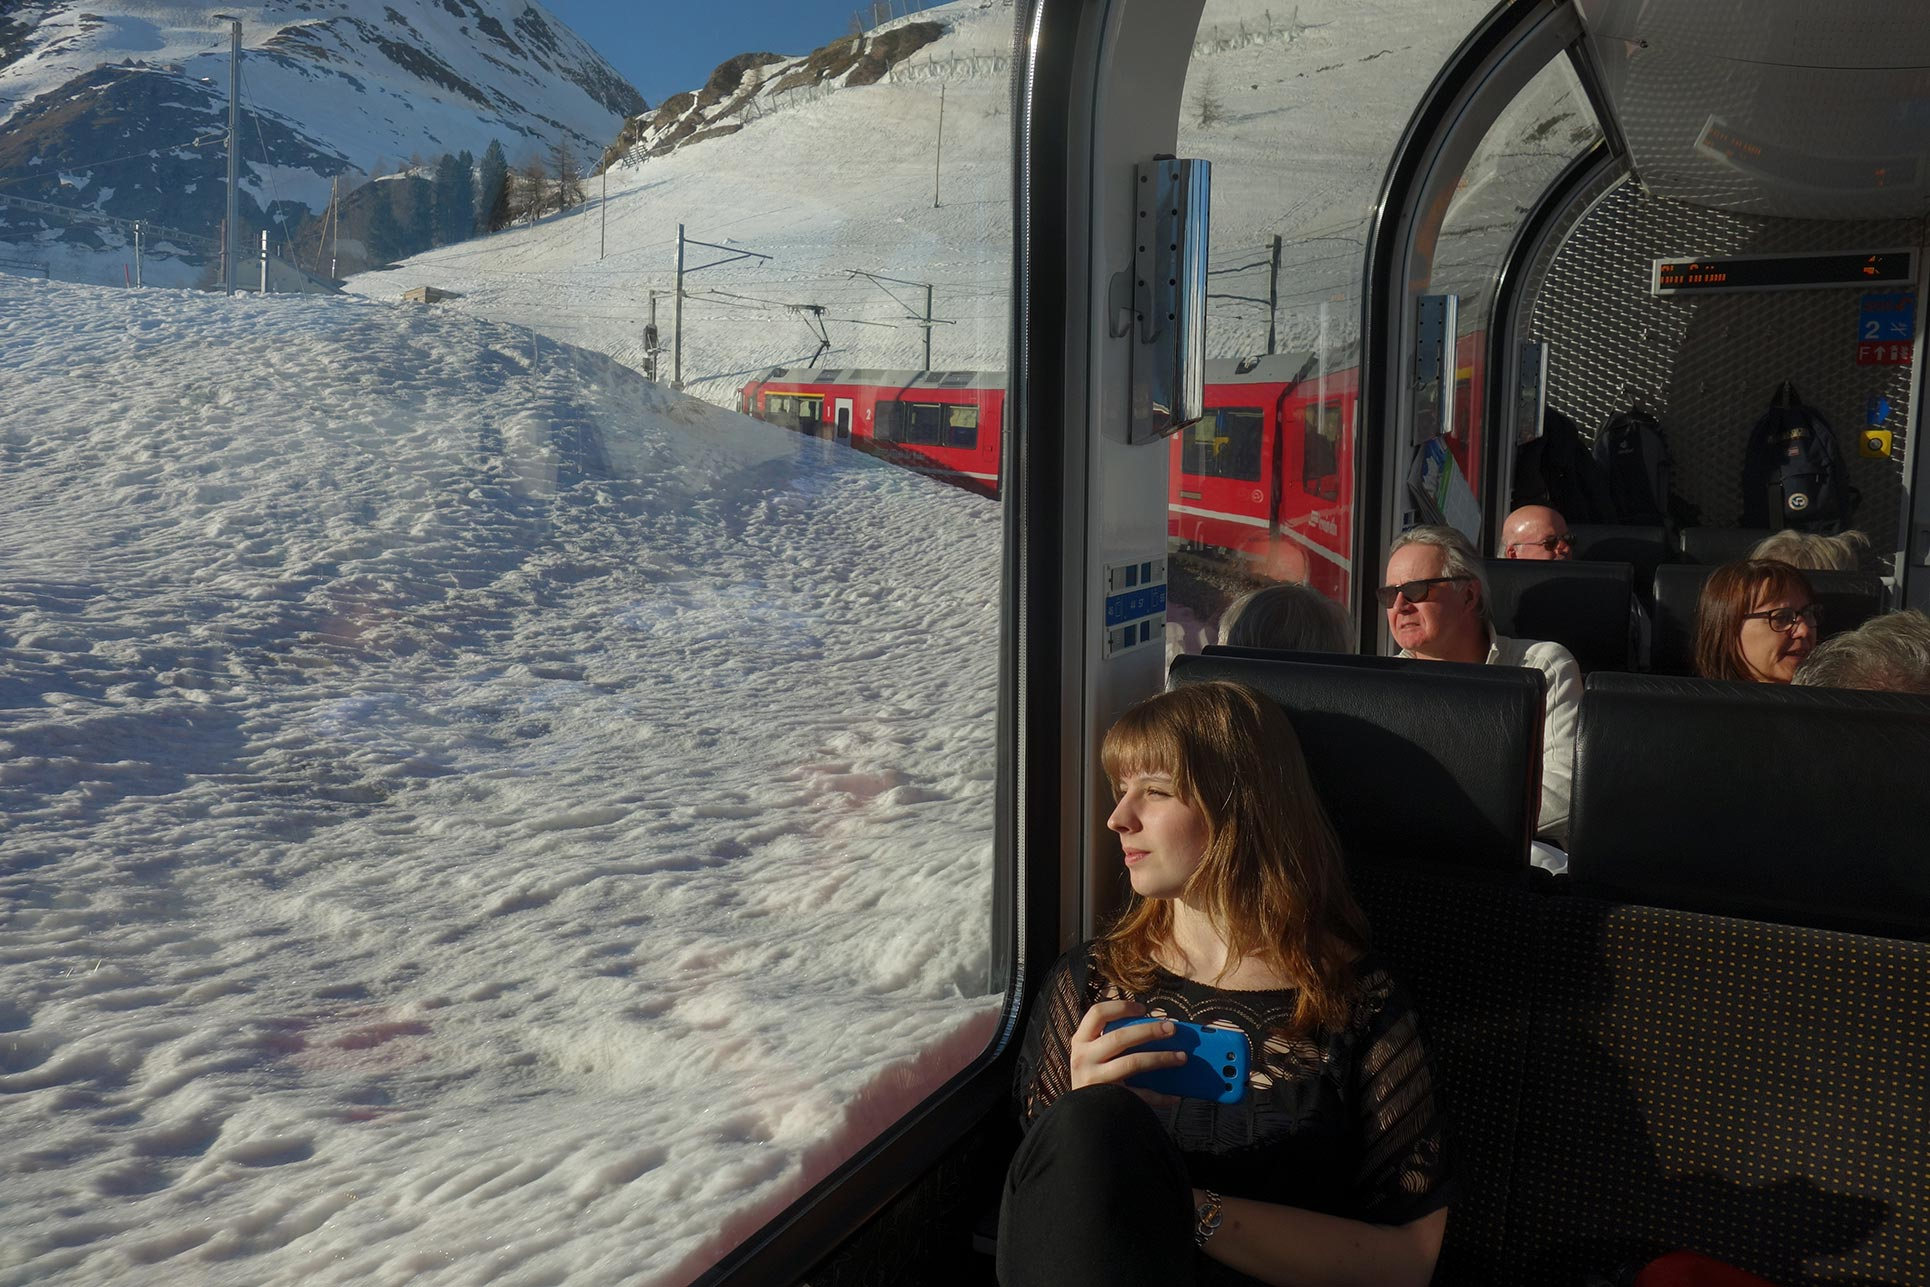 Travelling through Poschiavo Valley with Rhaetian Railways (Photo: Barbara Fässler)